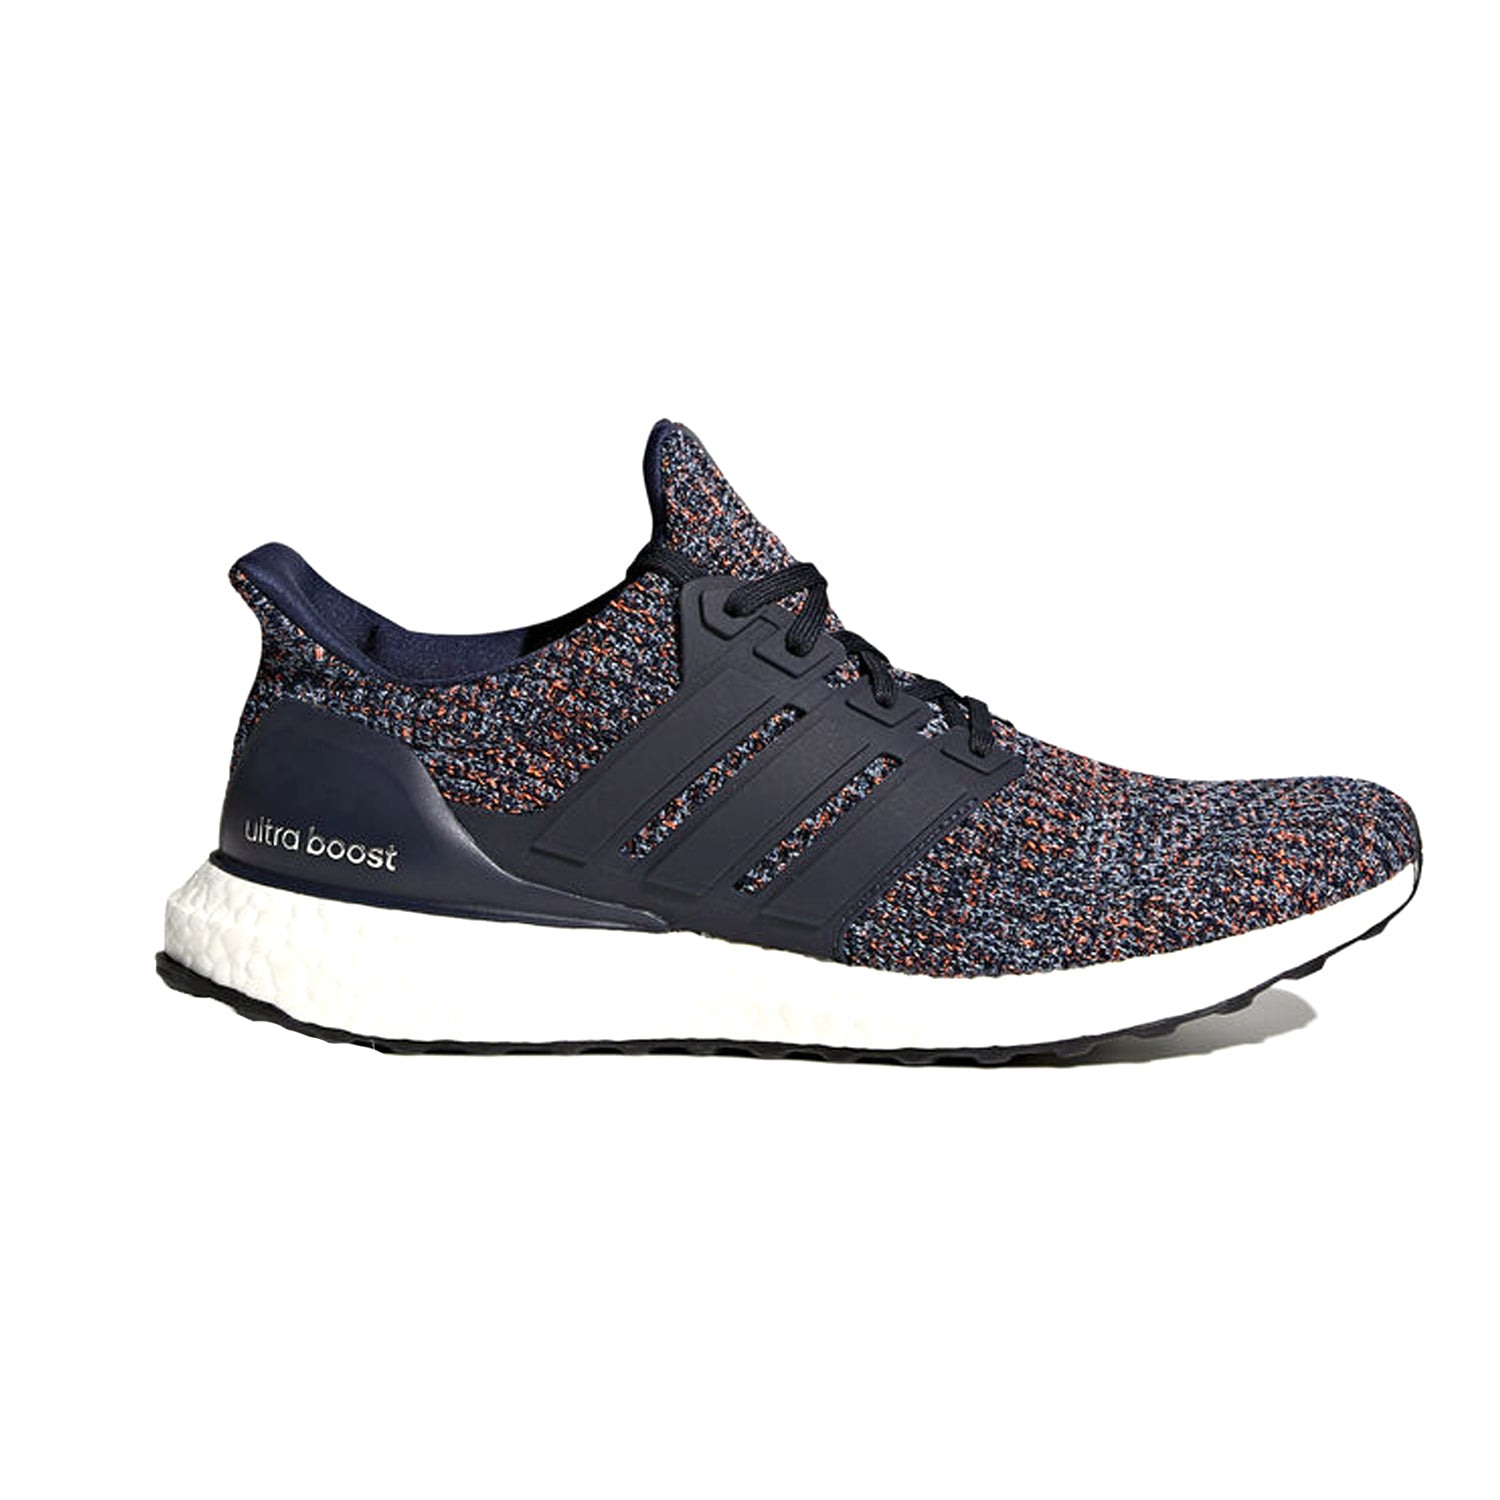 ULTRABOOST NAVY/MULTI